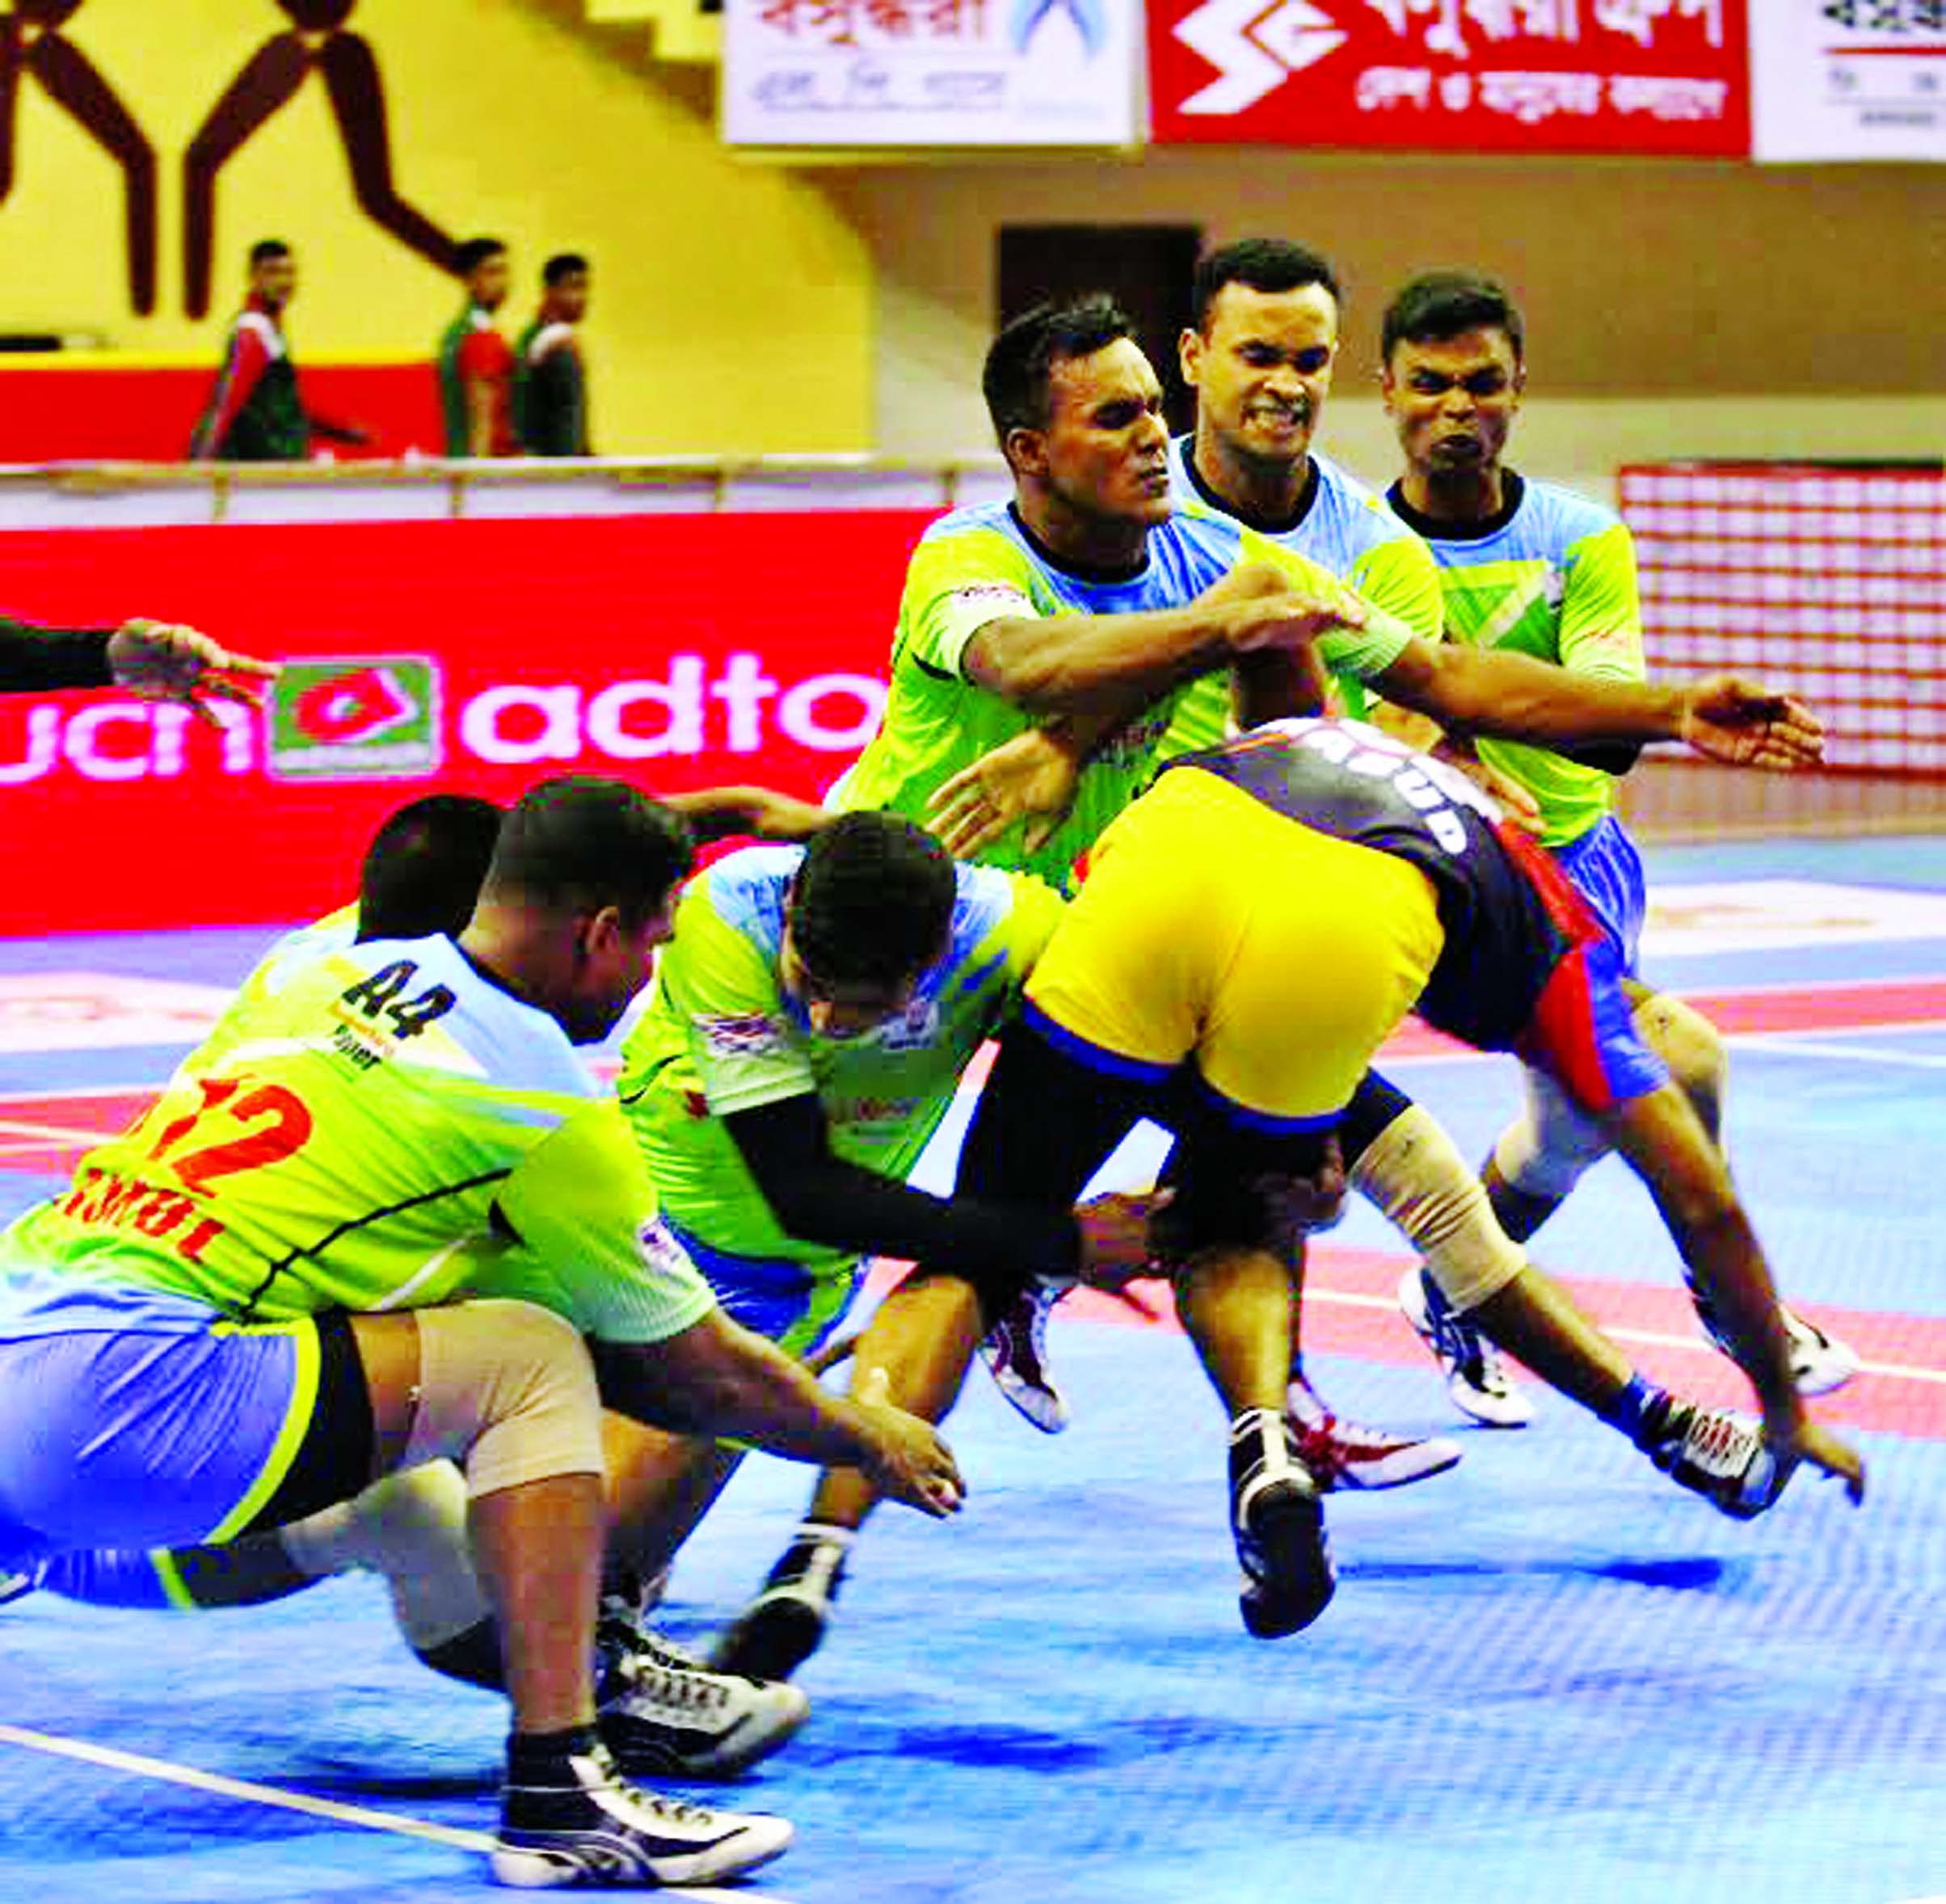 An action from the final round 2nd day's match of the Independence Cup Kabaddi between Bangladesh Navy and Air Force at Shaheed Suhrawardy Indoor Stadium in Mirpur on Monday.